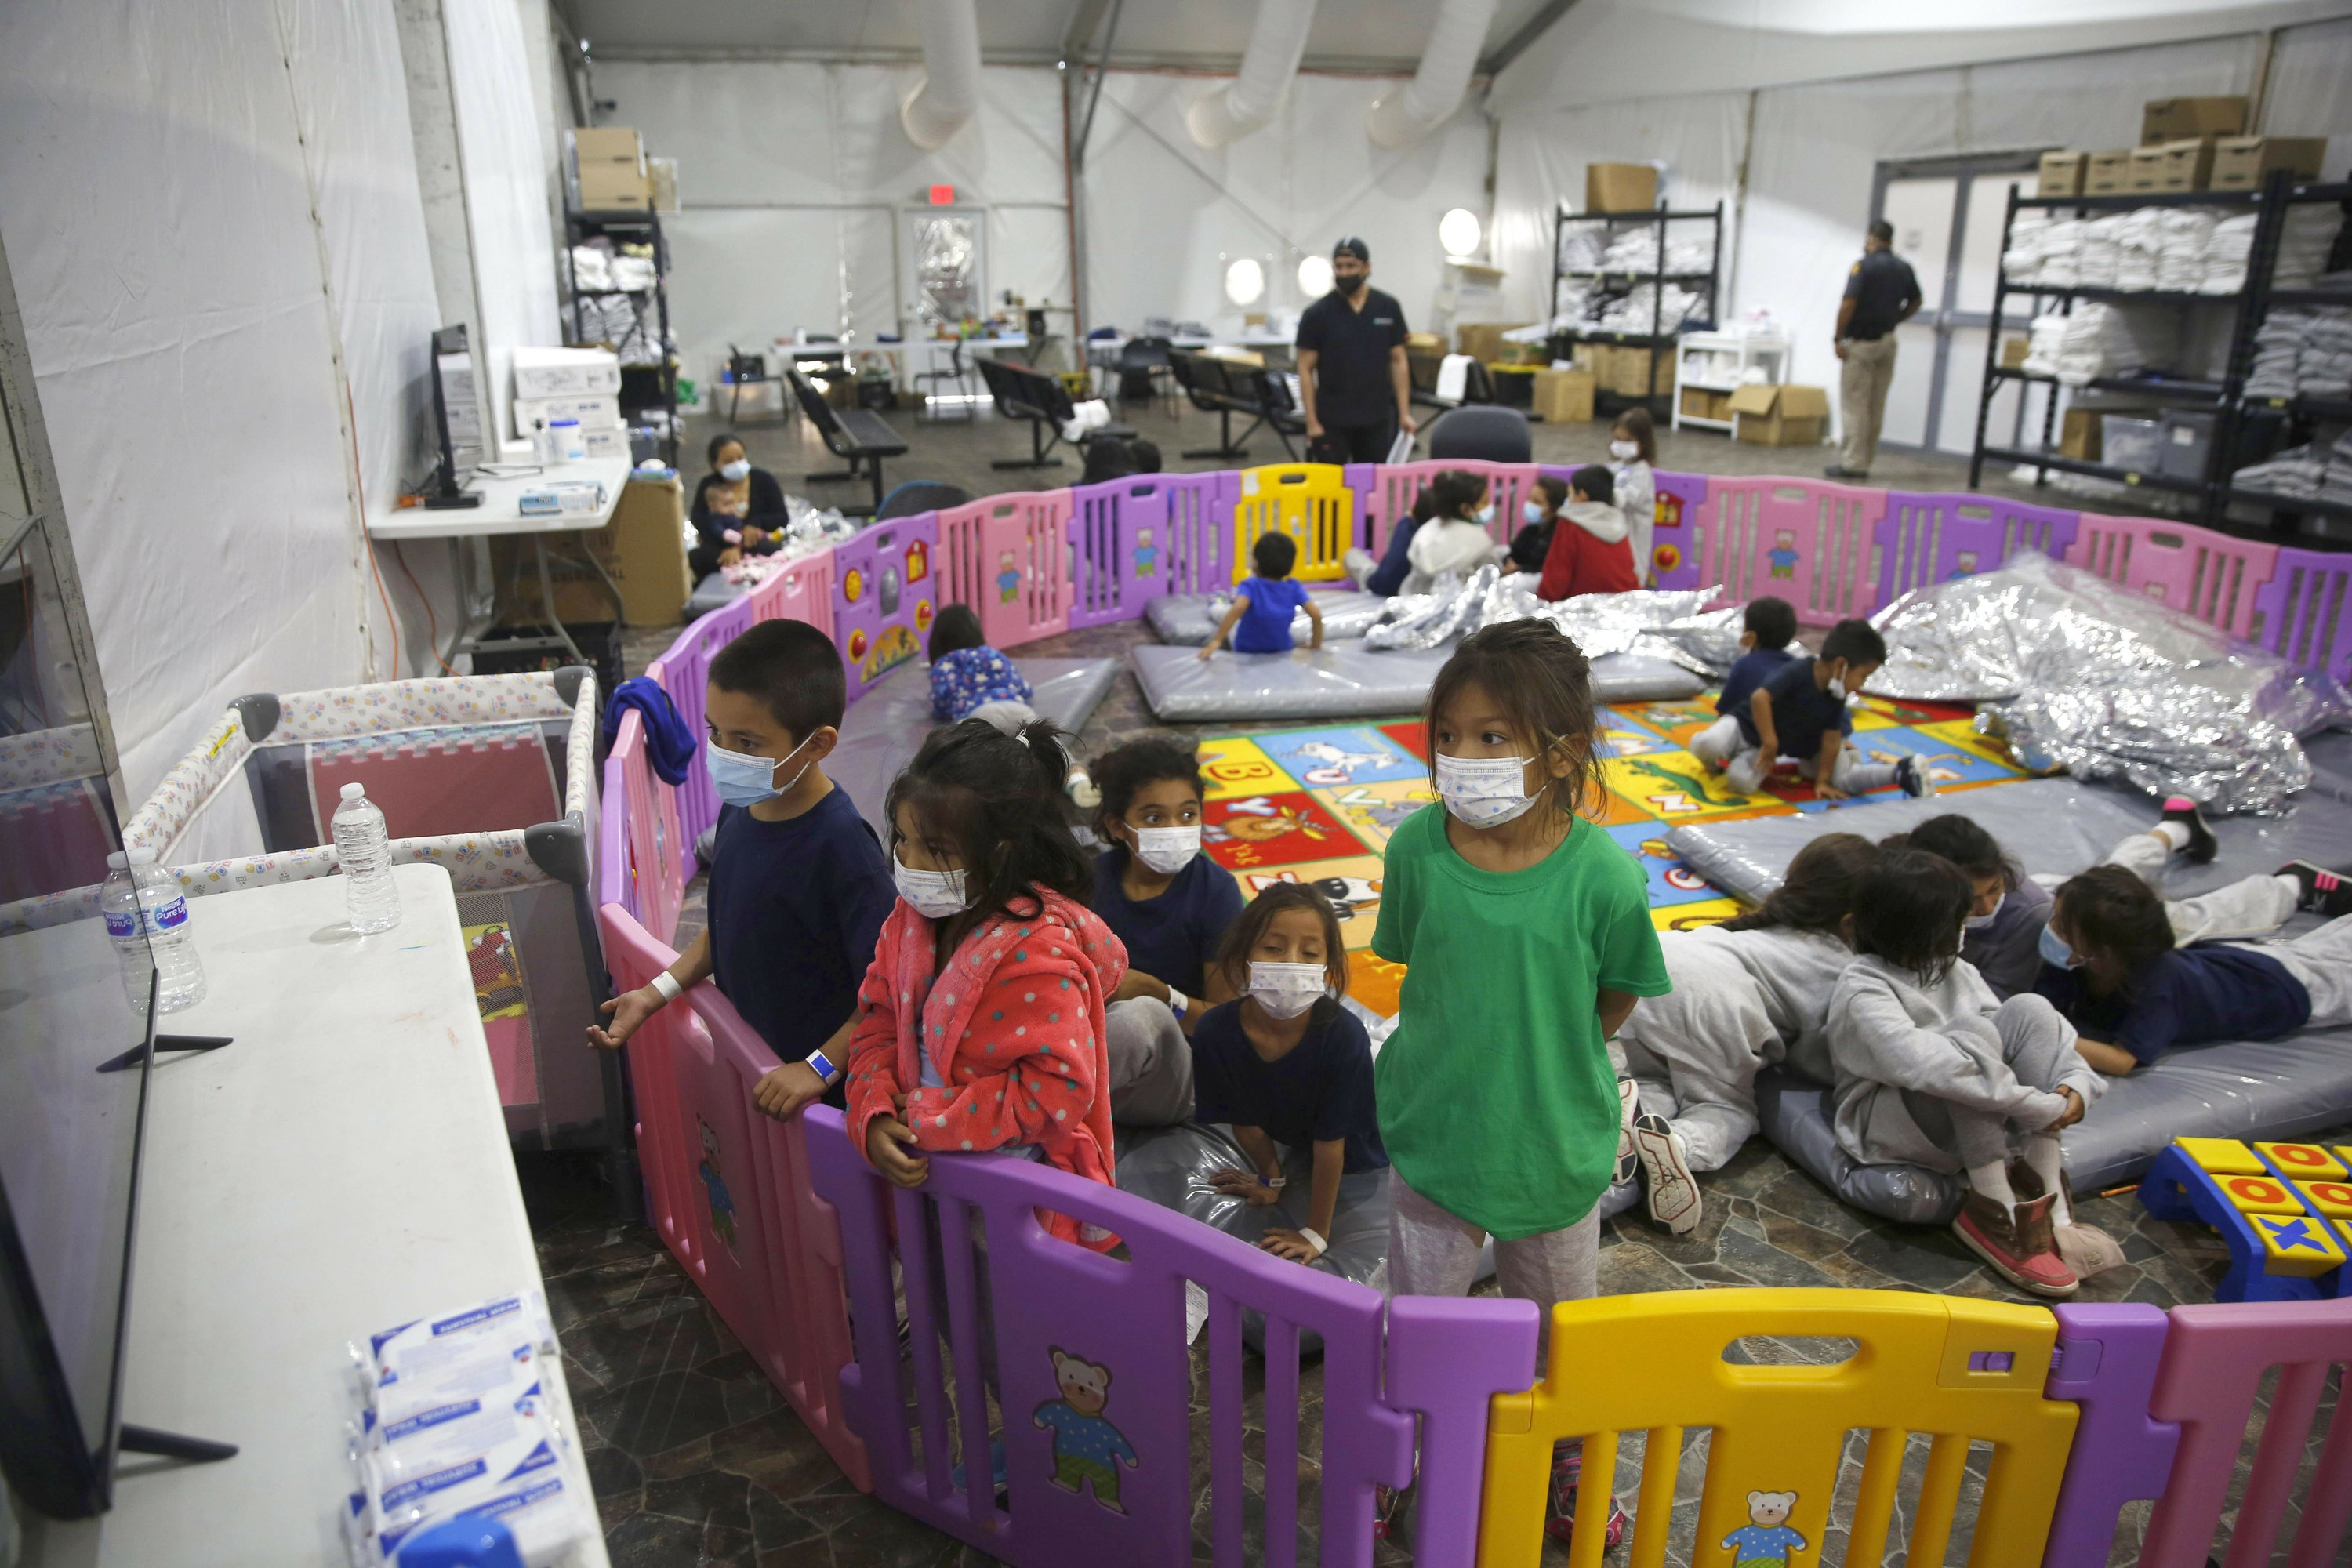 Migrant kids crowded into Texas facility as space runs low